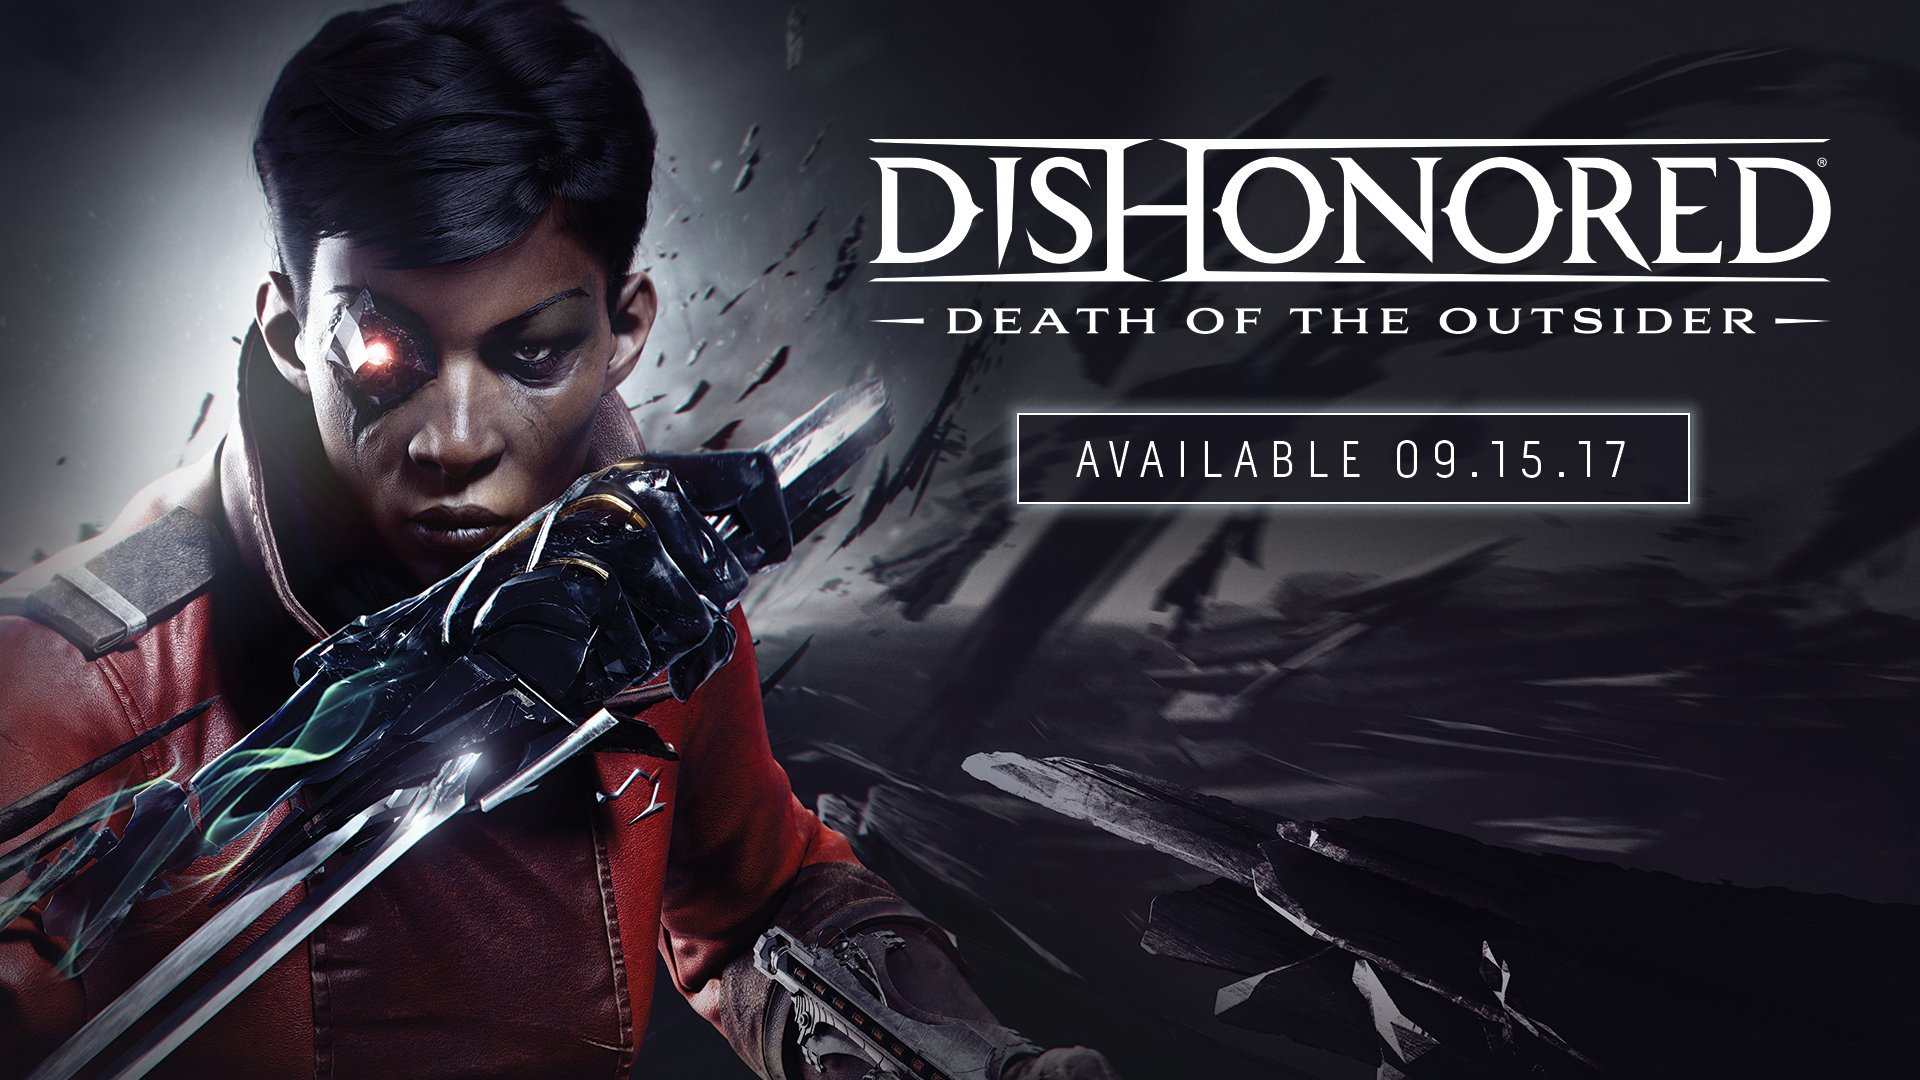 Dishonored Death of the Outsider HD Wallpaper Background Image 1920x1080